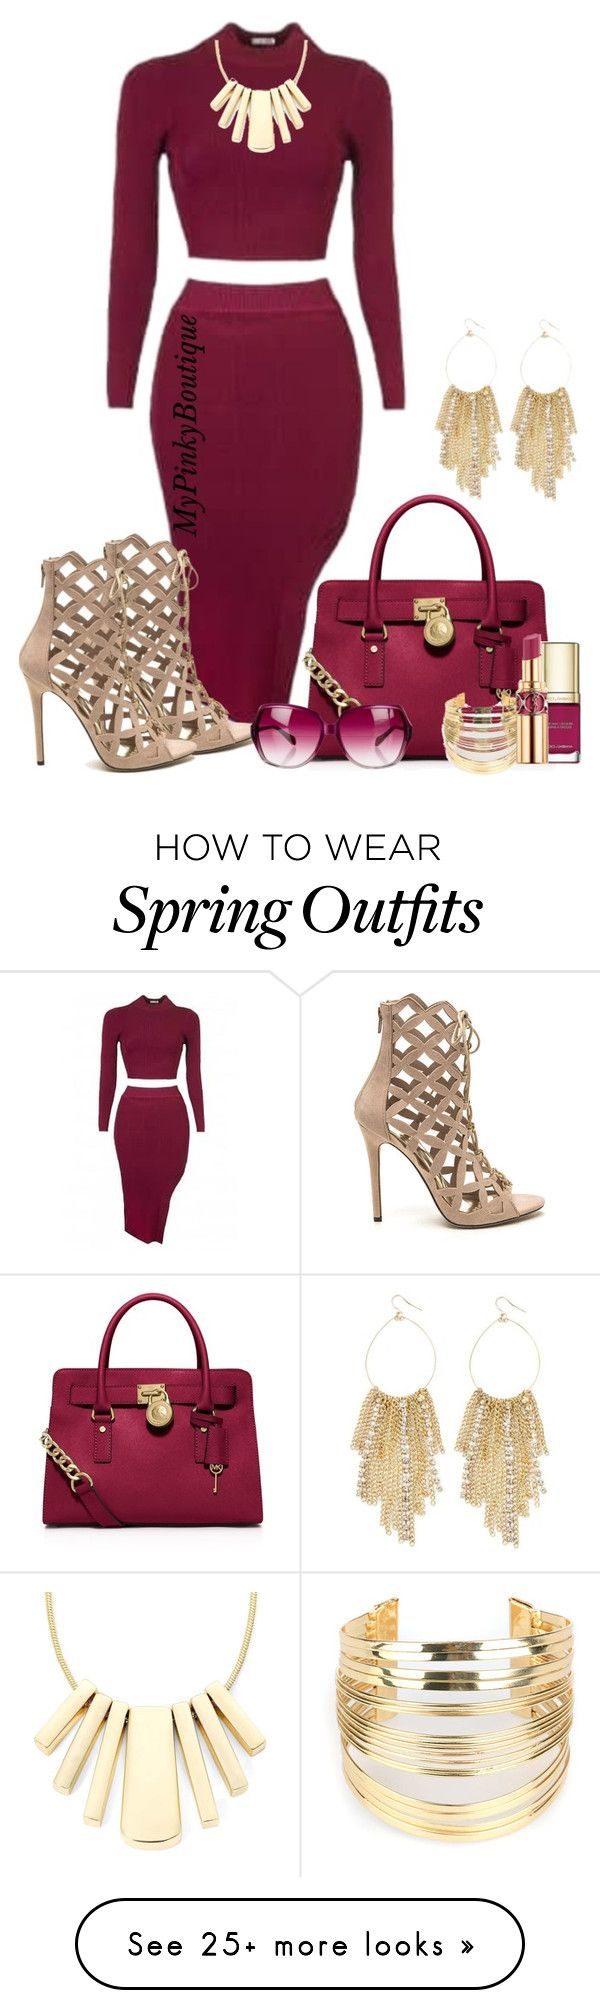 """#725"" by gorgeousmama29 on Polyvore featuring MICHAEL Michael Kors, Venus, Liz Claiborne, WithChic, Dolce&Gabbana, Yves Saint Laurent and Oliver Peoples"